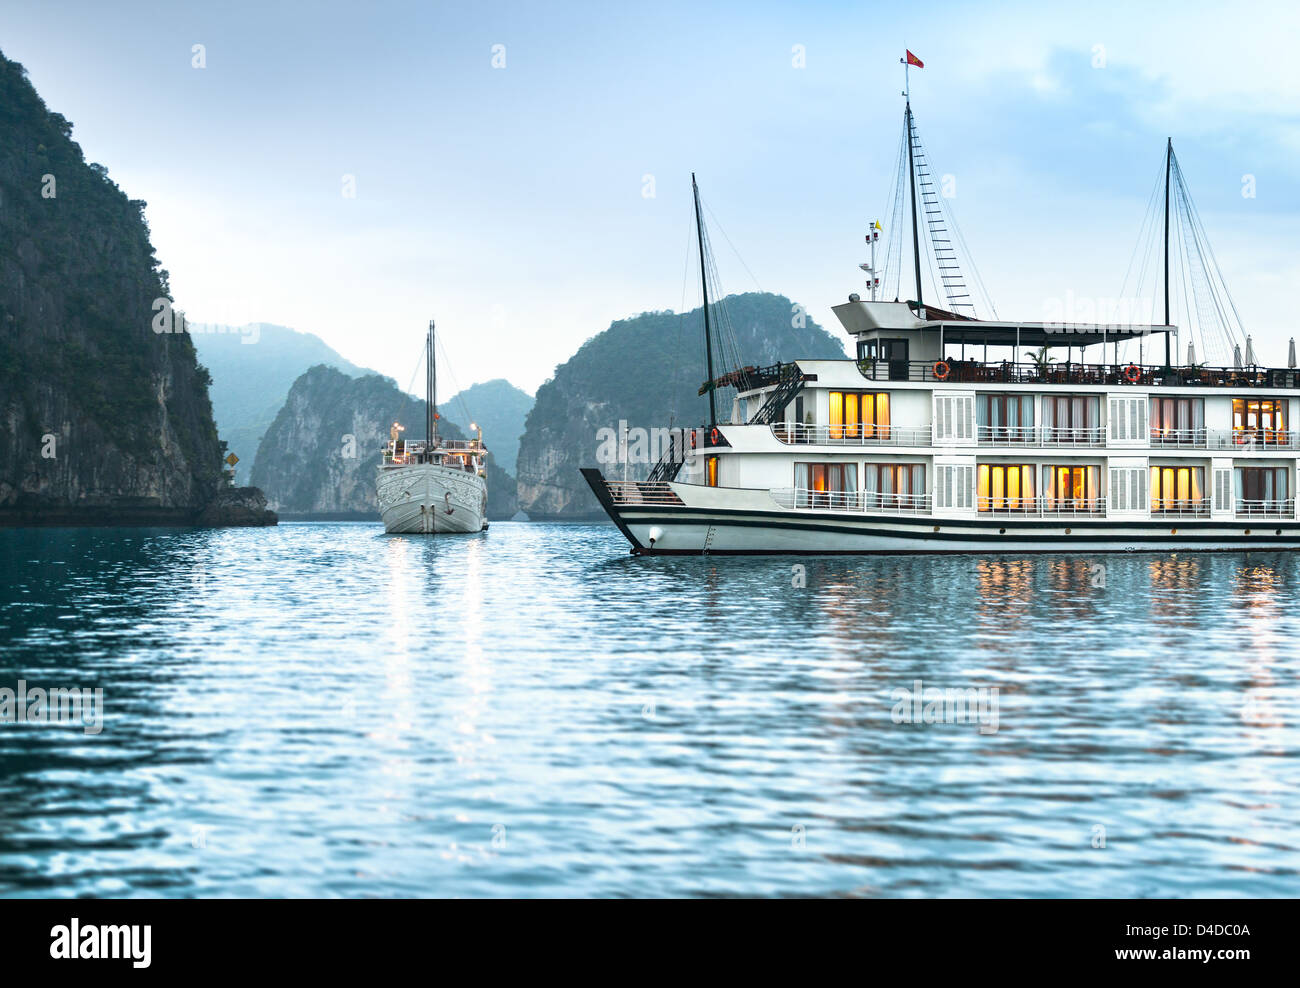 Beautiful nature in Halong bay, Vietnam, Asia. Picturesque scene with blue sky, ripple on water and mountains. Houseboat - Stock Image